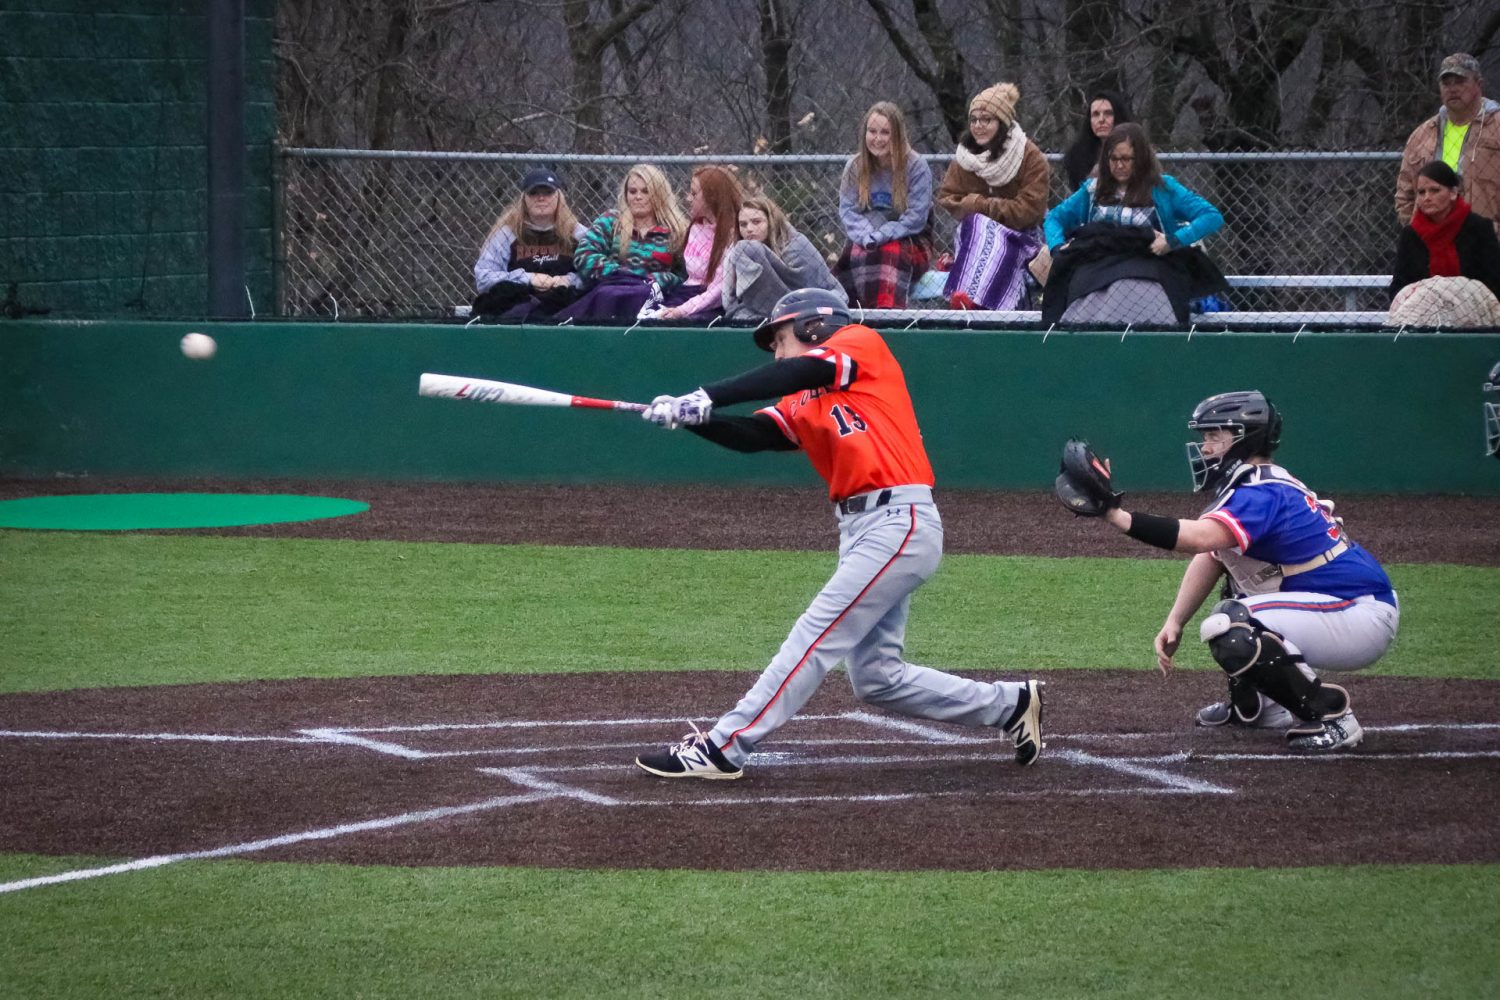 Tigers Squash Hornets In 5-Inning Romp